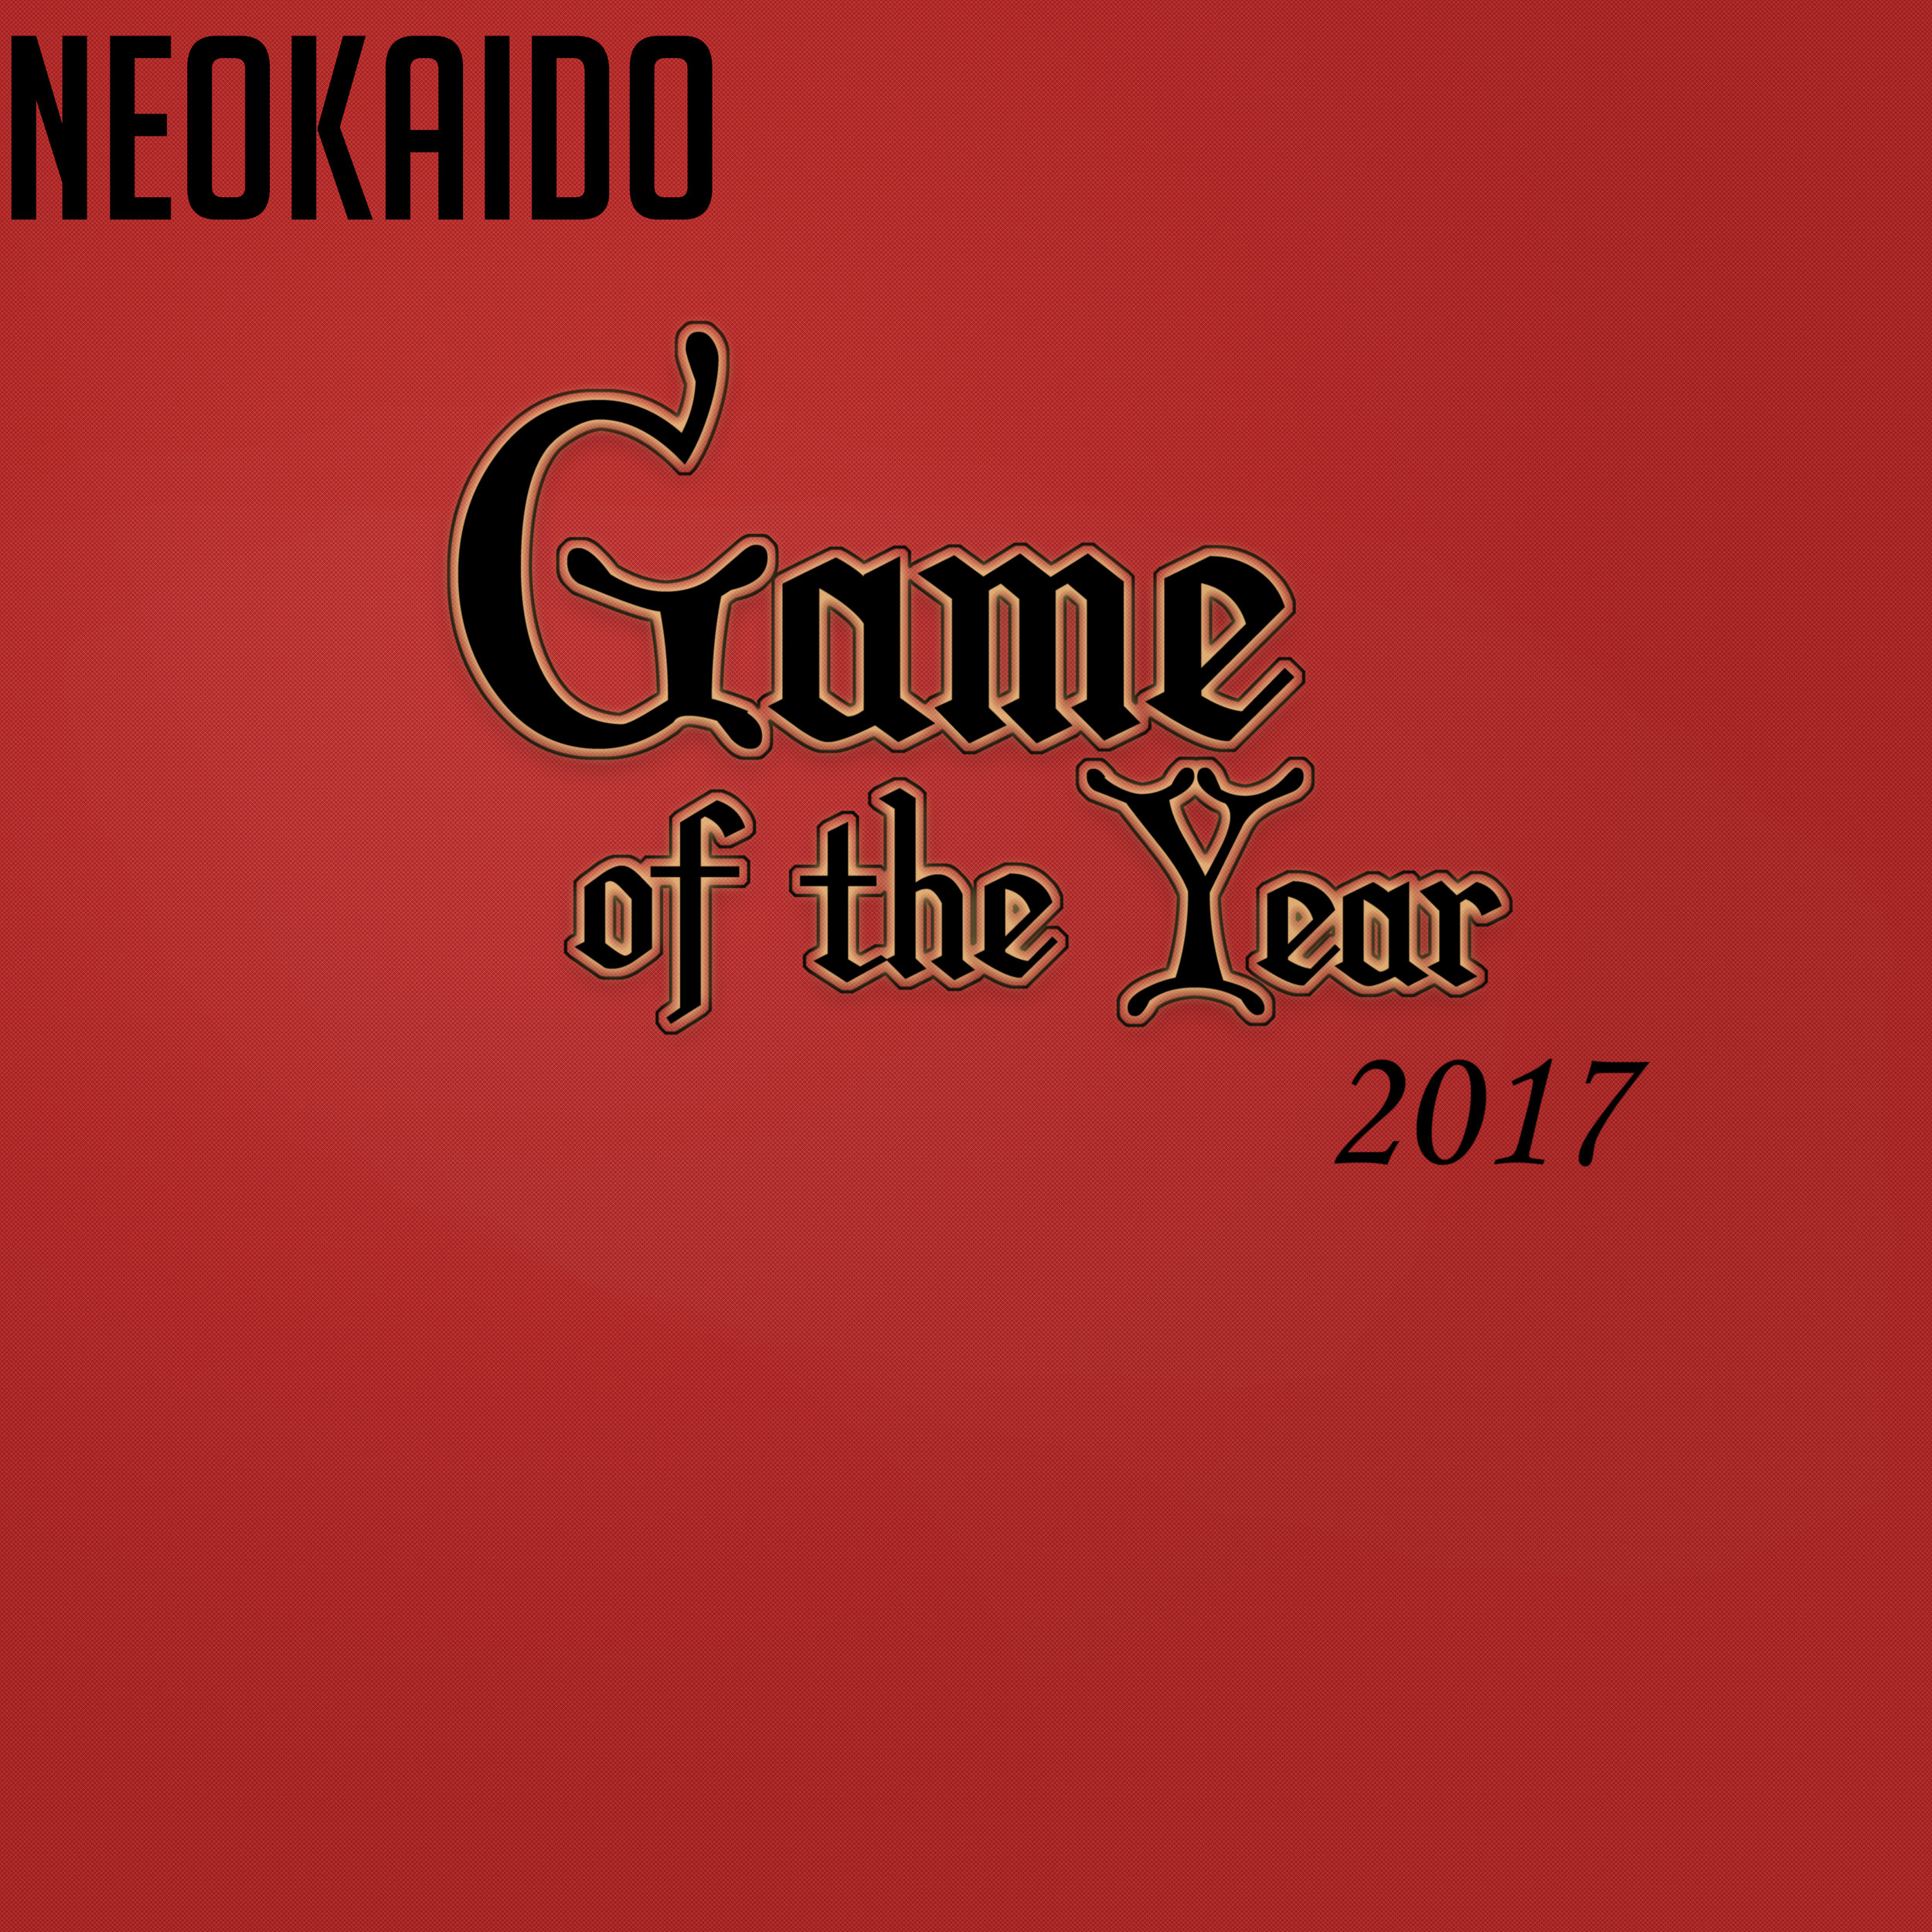 Neokaido Game of the Year 2017 (Part 2-2) - In the second part of day two we discuss Best Looking, Best Game We Didn't Play, and Best Sequel. Enjoy Folks!